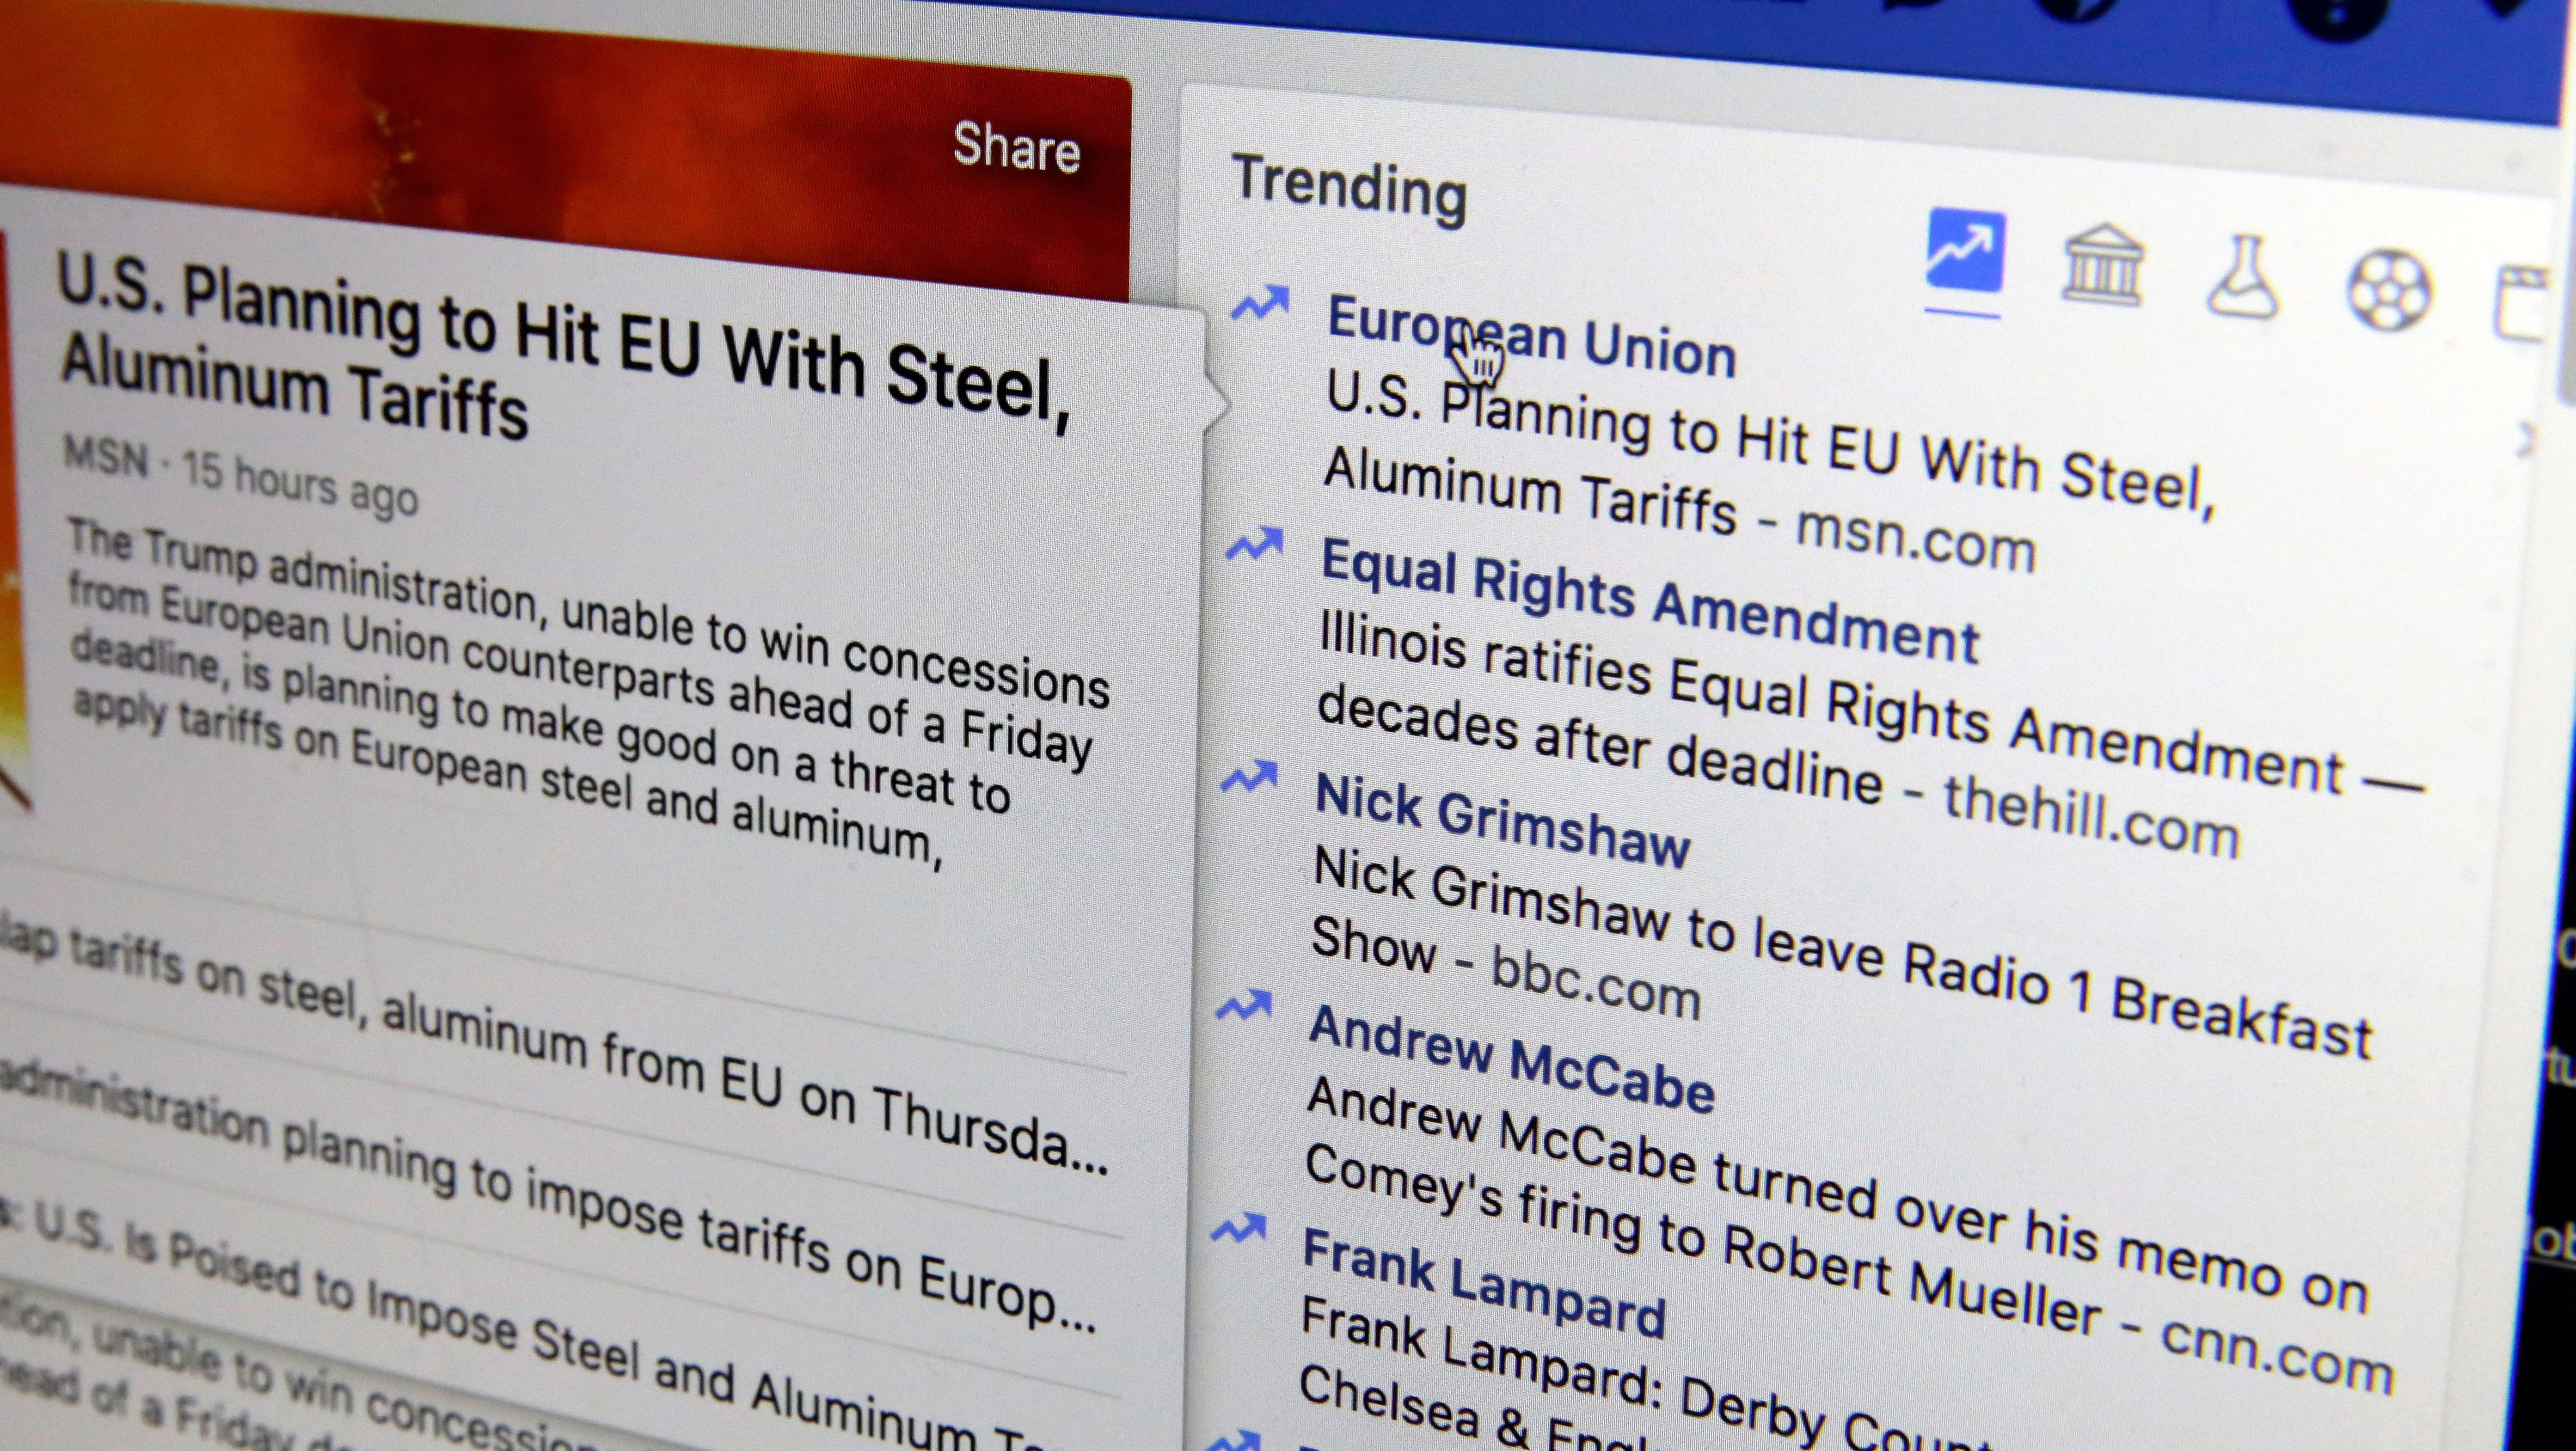 """This Thursday, May 31, 2018, photo shows the Trending section on a Facebook account in New York.   Facebook is shutting down its ill-fated """"trending"""" news section after four years, a company executive told The Associated Press. The company claims the tool is outdated and wasn't popular. But the trending section also proved problematic in ways that would presage Facebook's later problems with fake news, political balance and the limitations of artificial intelligence in managing the messy human world. (AP Photo/Richard Drew)"""